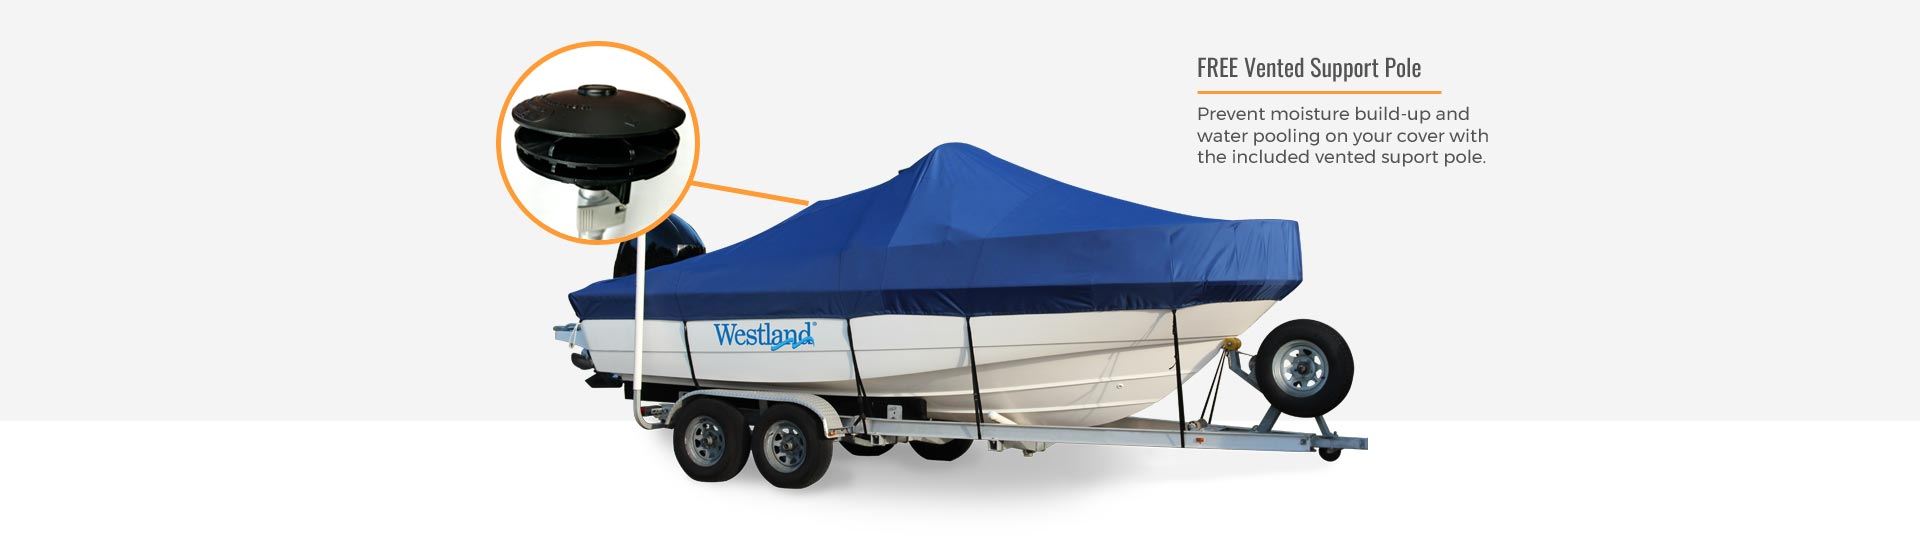 Westland boat cover pole